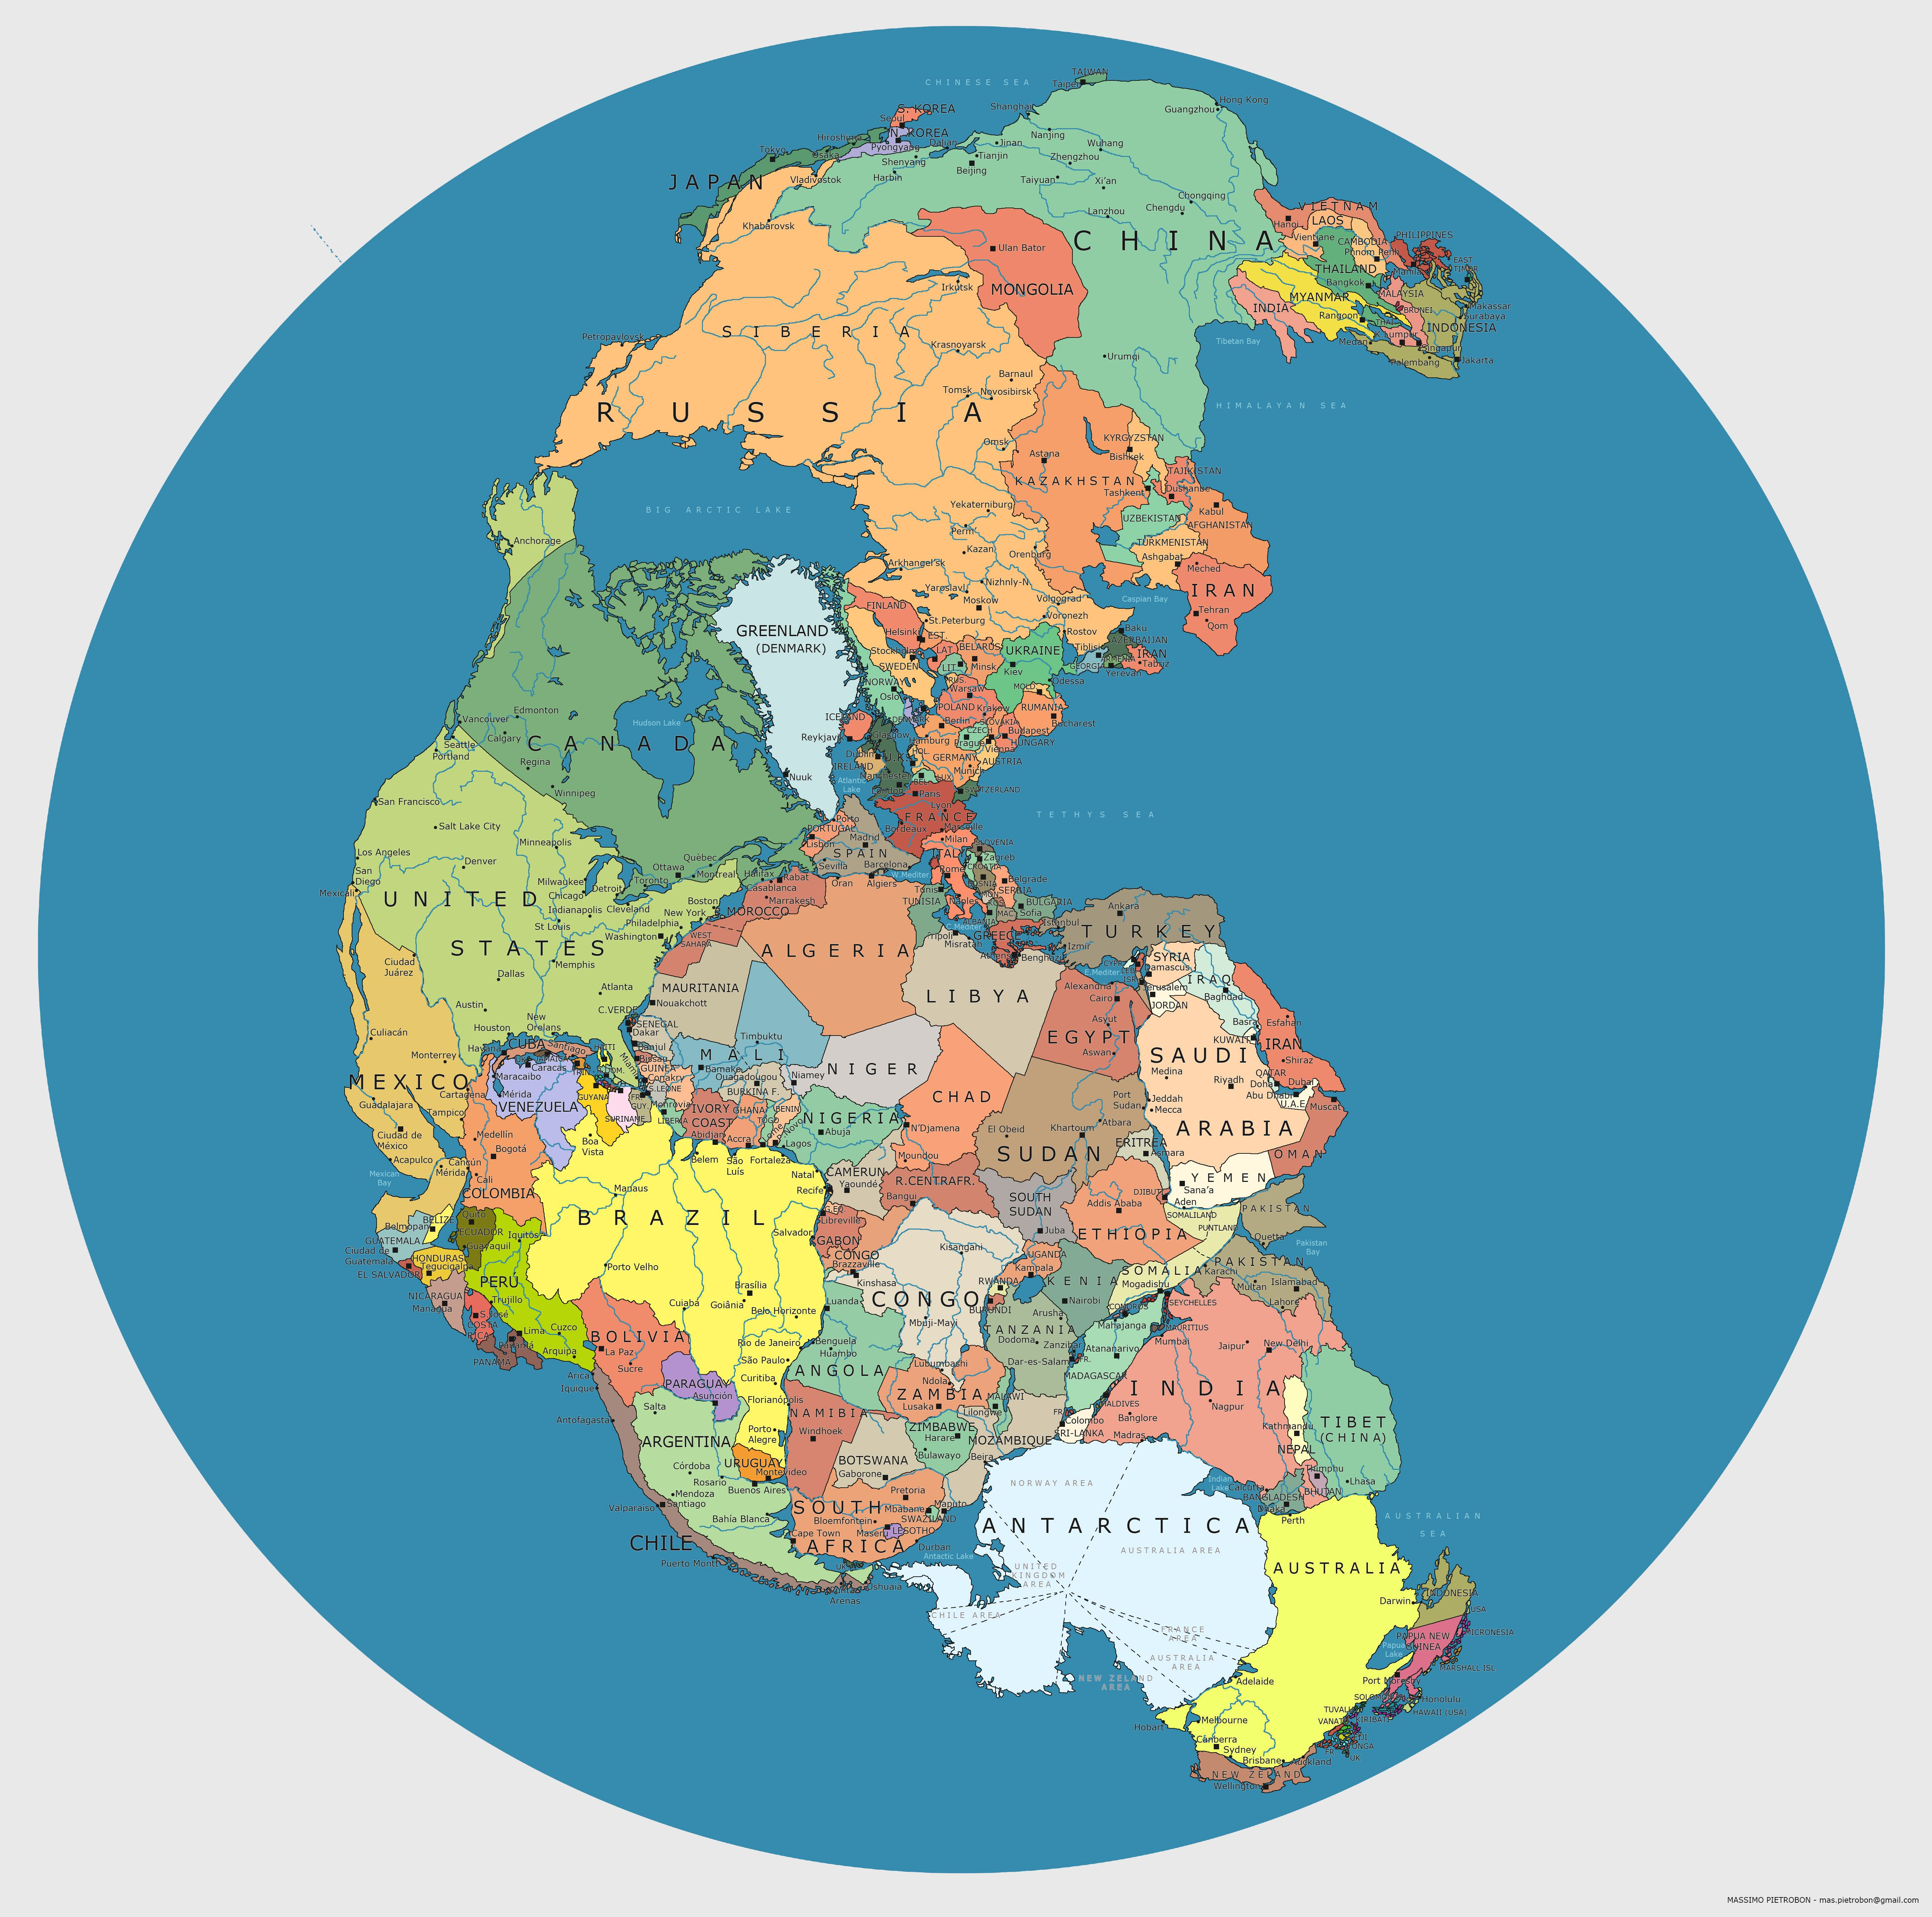 The Map Pictures The Earth During The Late Paleozoic, When All Land Was  Clumped Into One Contiguous Mass Called The Supercontinent Pangea. Its  Labeled With ...